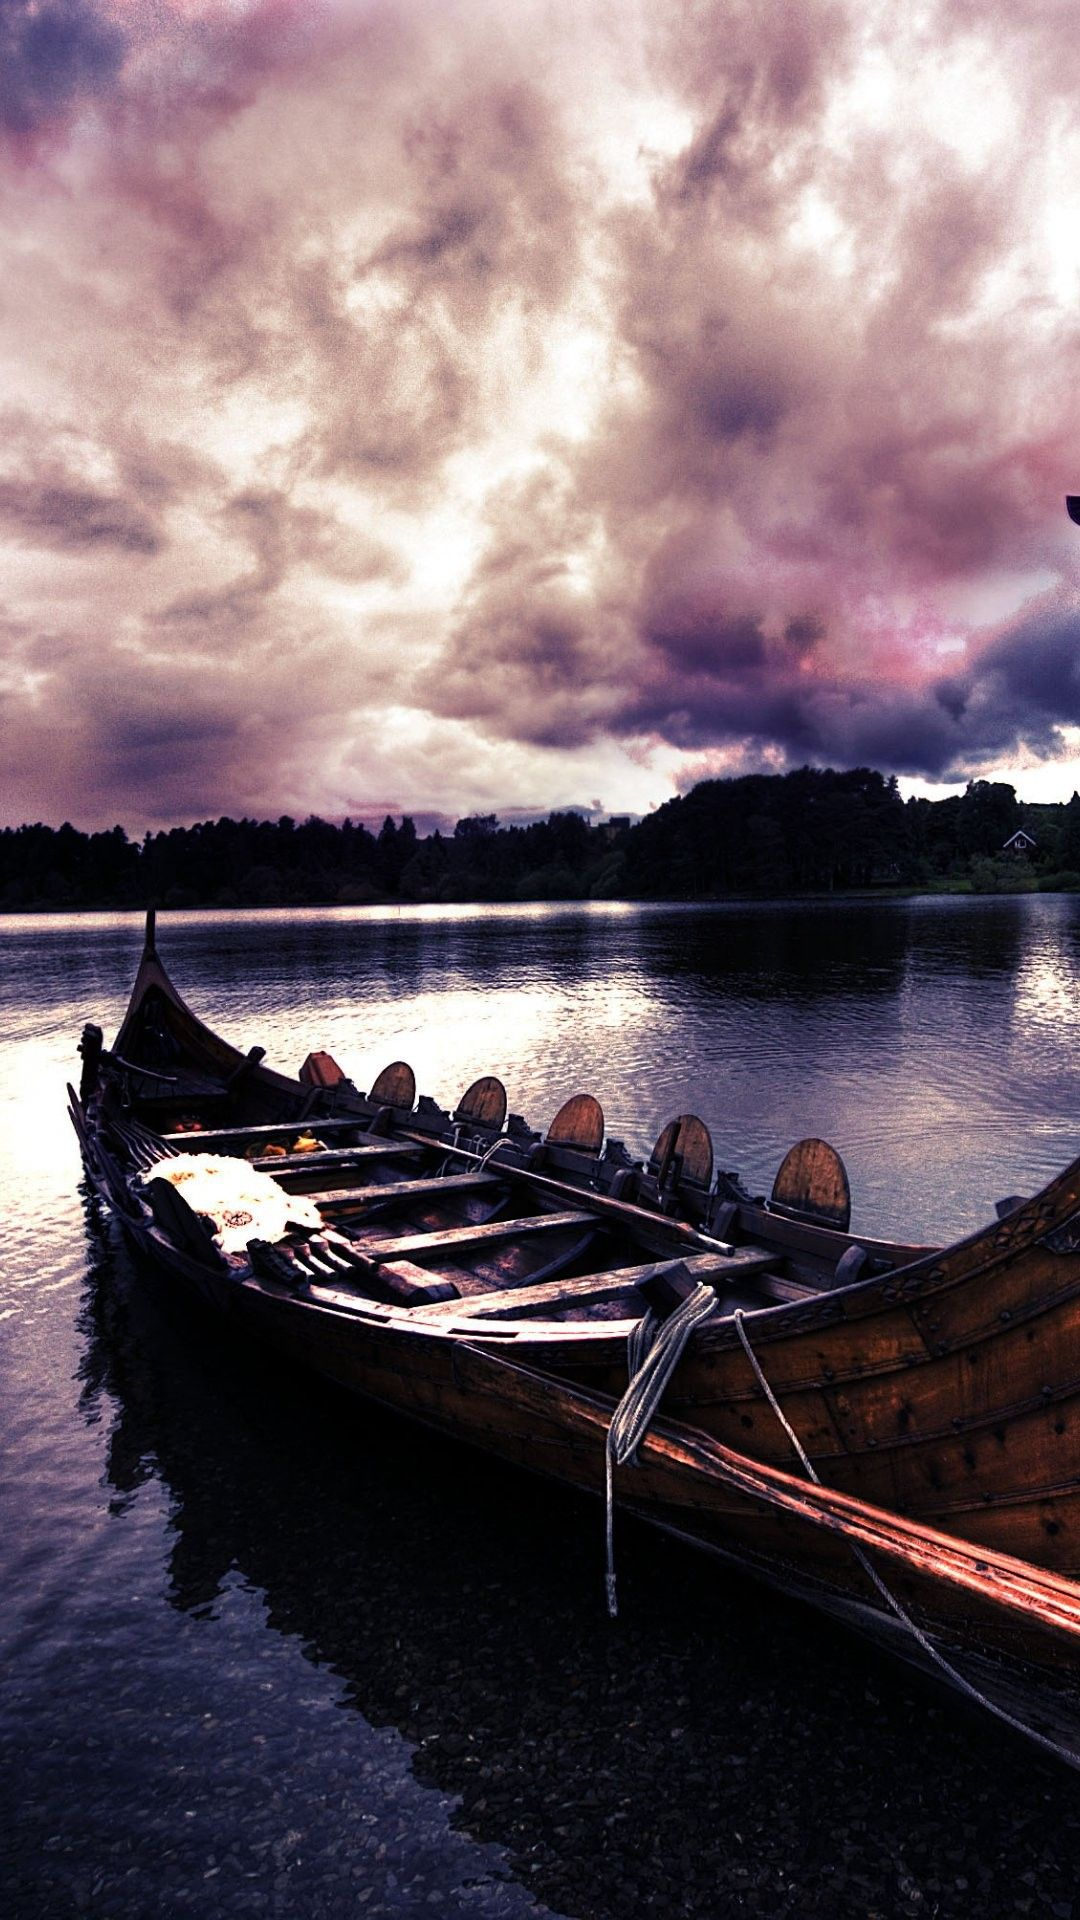 photography wallpaper for iphone - Google Search | Boat ...